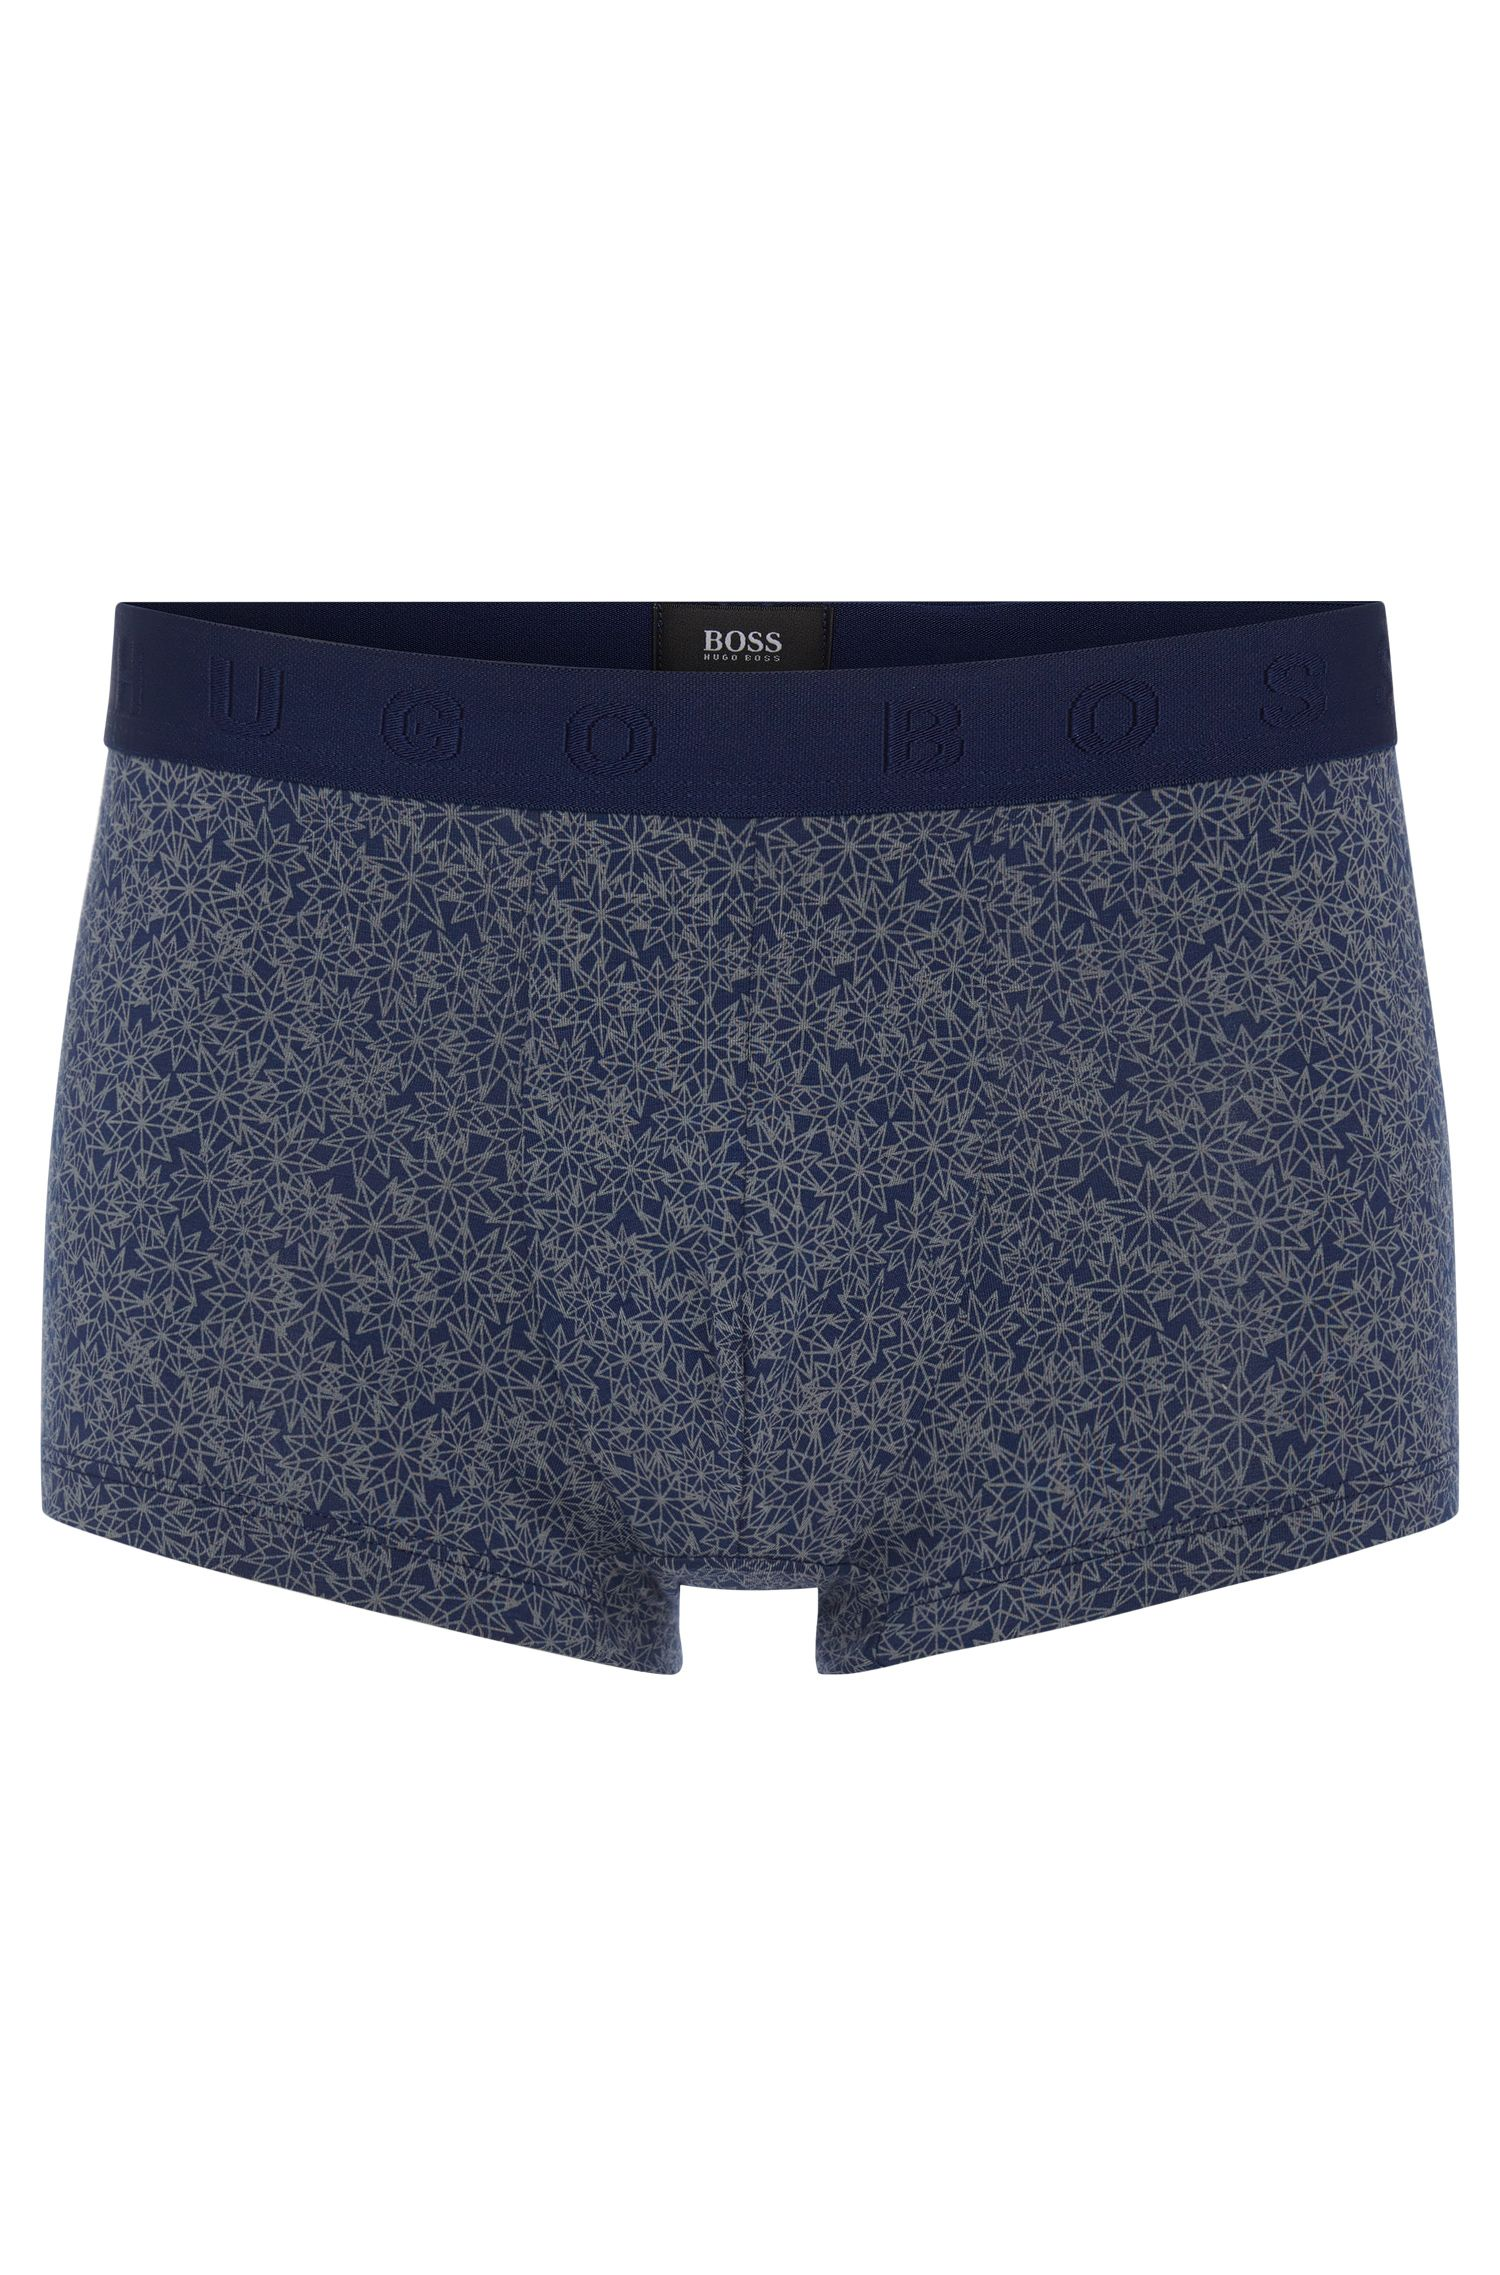 'Trunk Microprint' | Stretch Cotton Modal Trunks